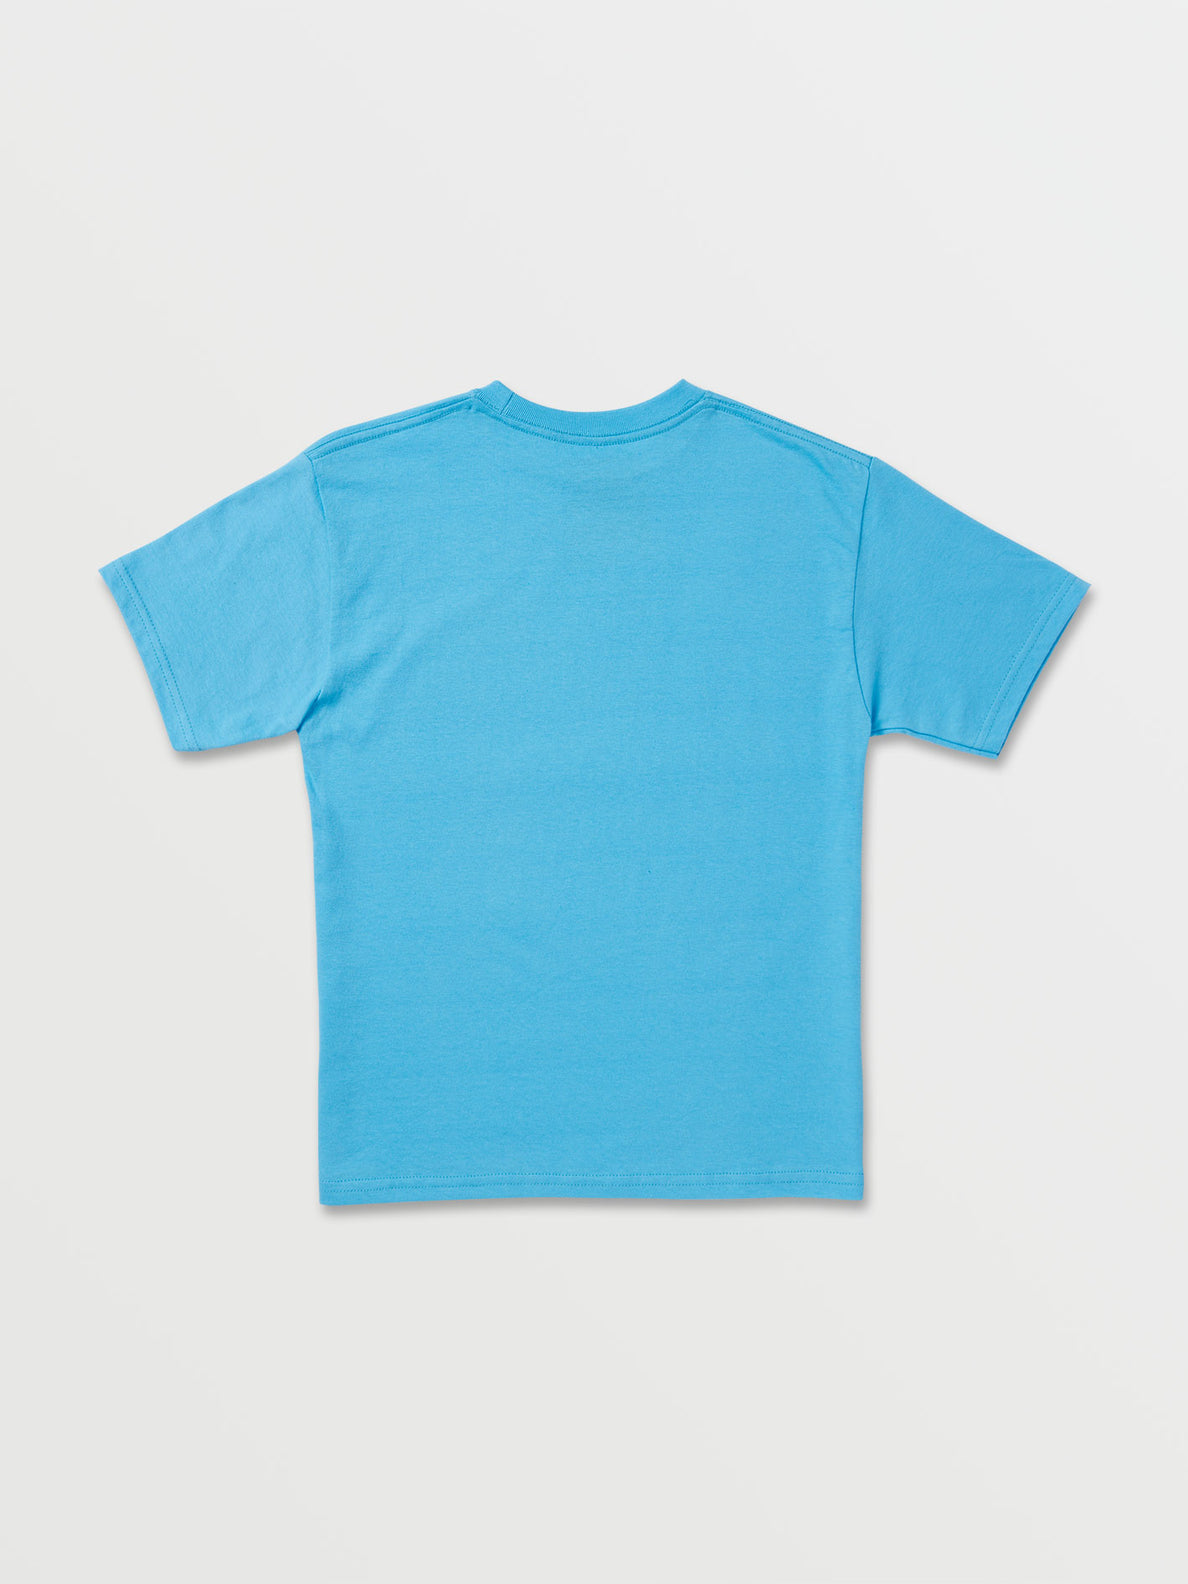 Llittle Boys Series Short Sleeve Tee - Aqua (Y35419H4_AQU) [B]